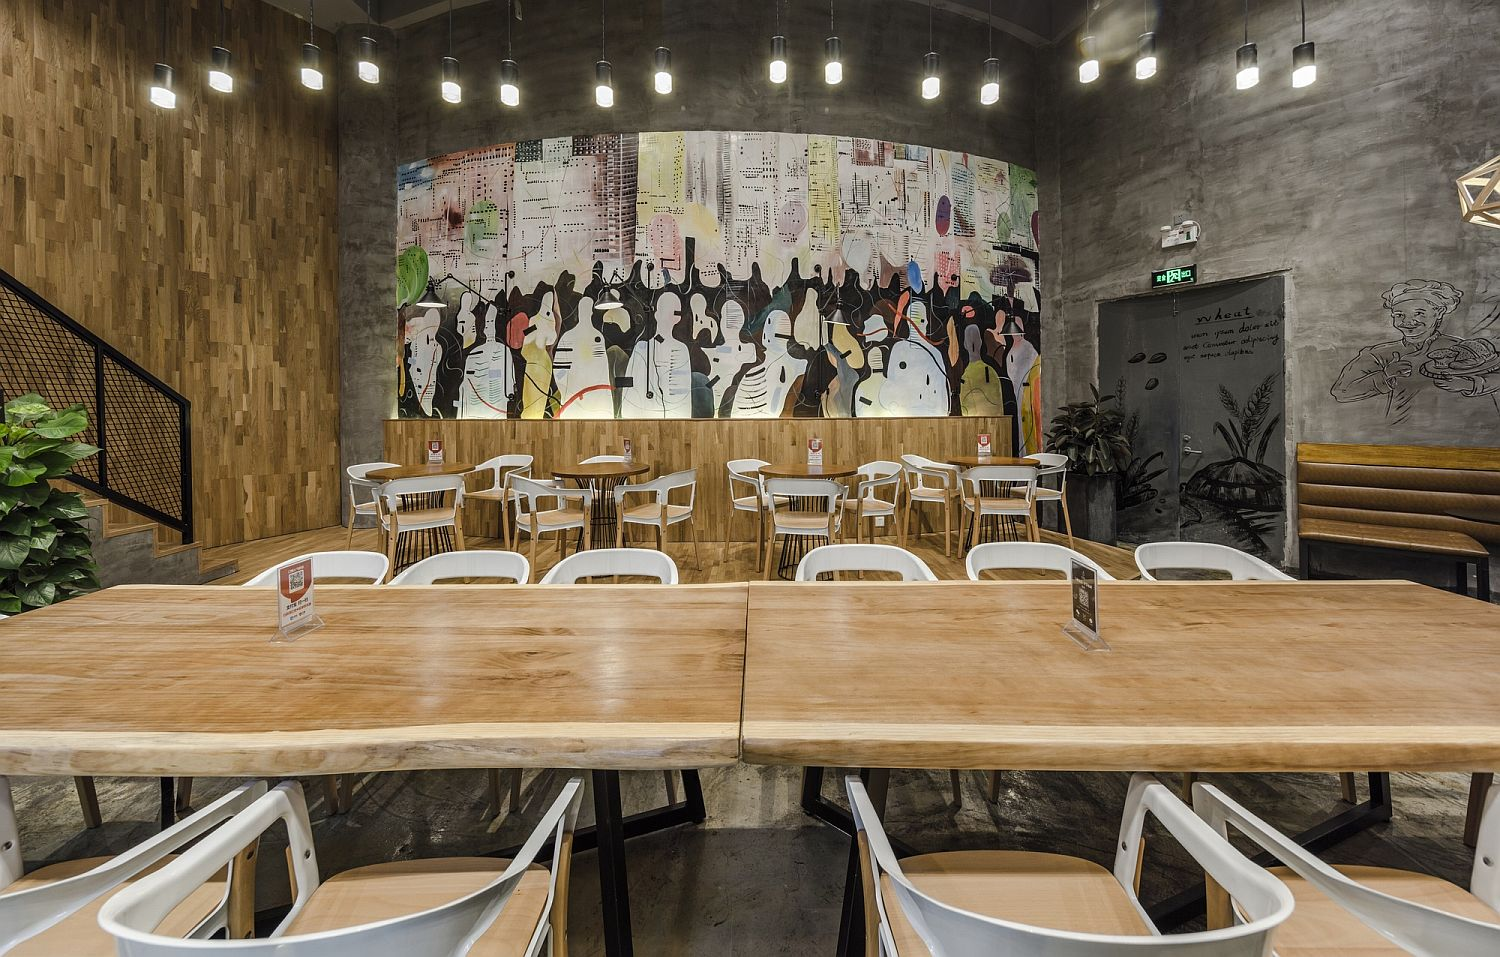 Colorful-wall-mural-and-edgy-wooden-tables-inside-the-Original-Bakery